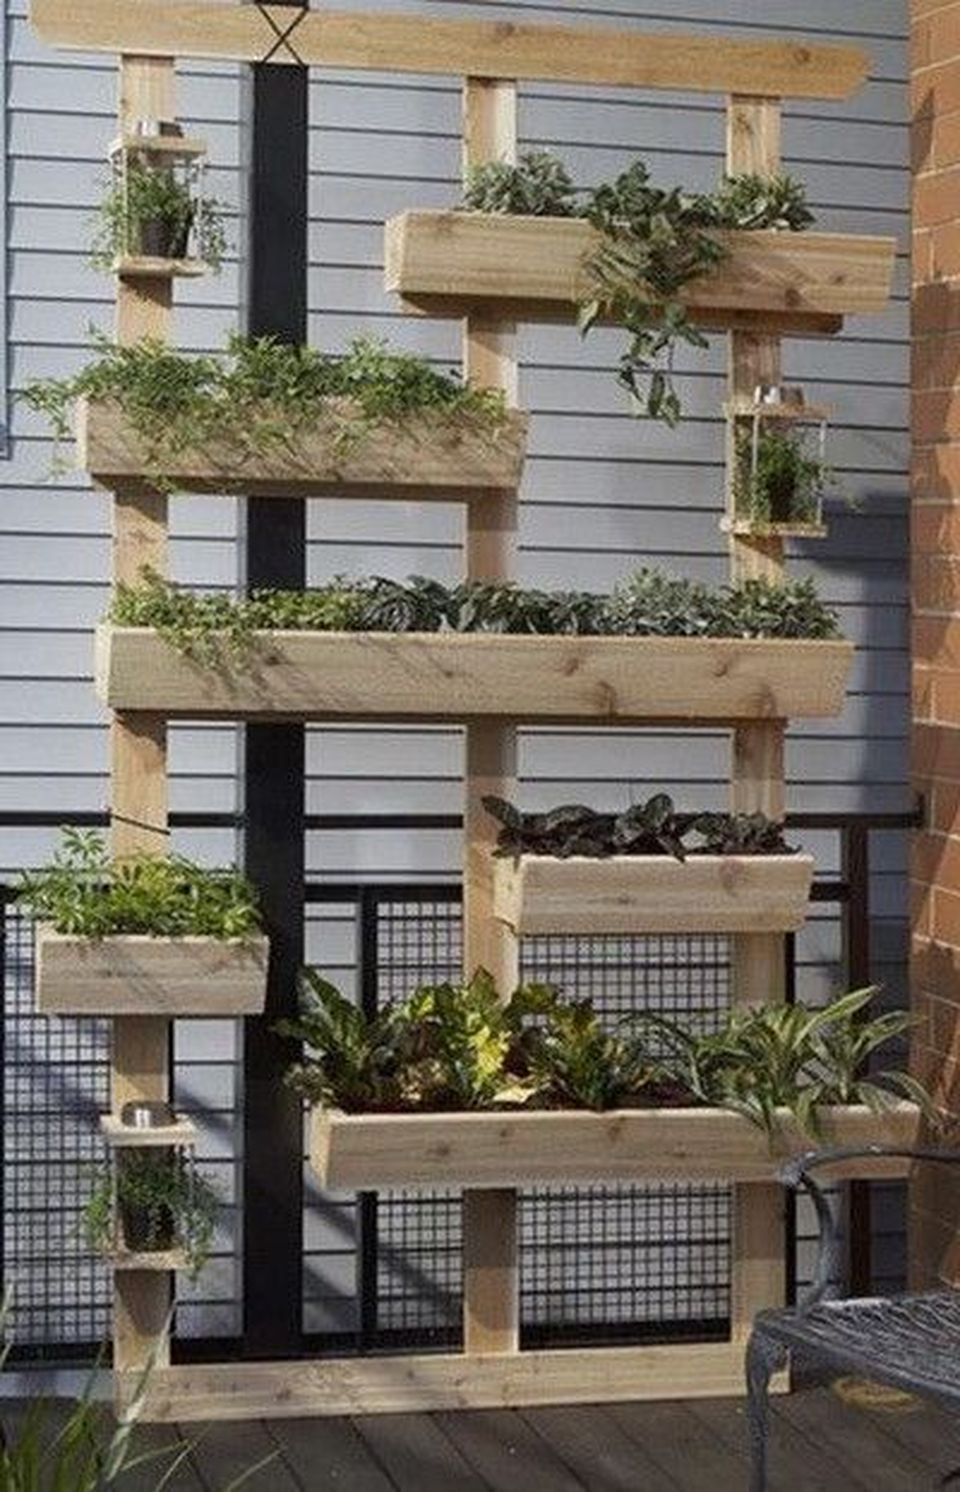 Inspiring Vertical Garden Ideas for Small Space 33